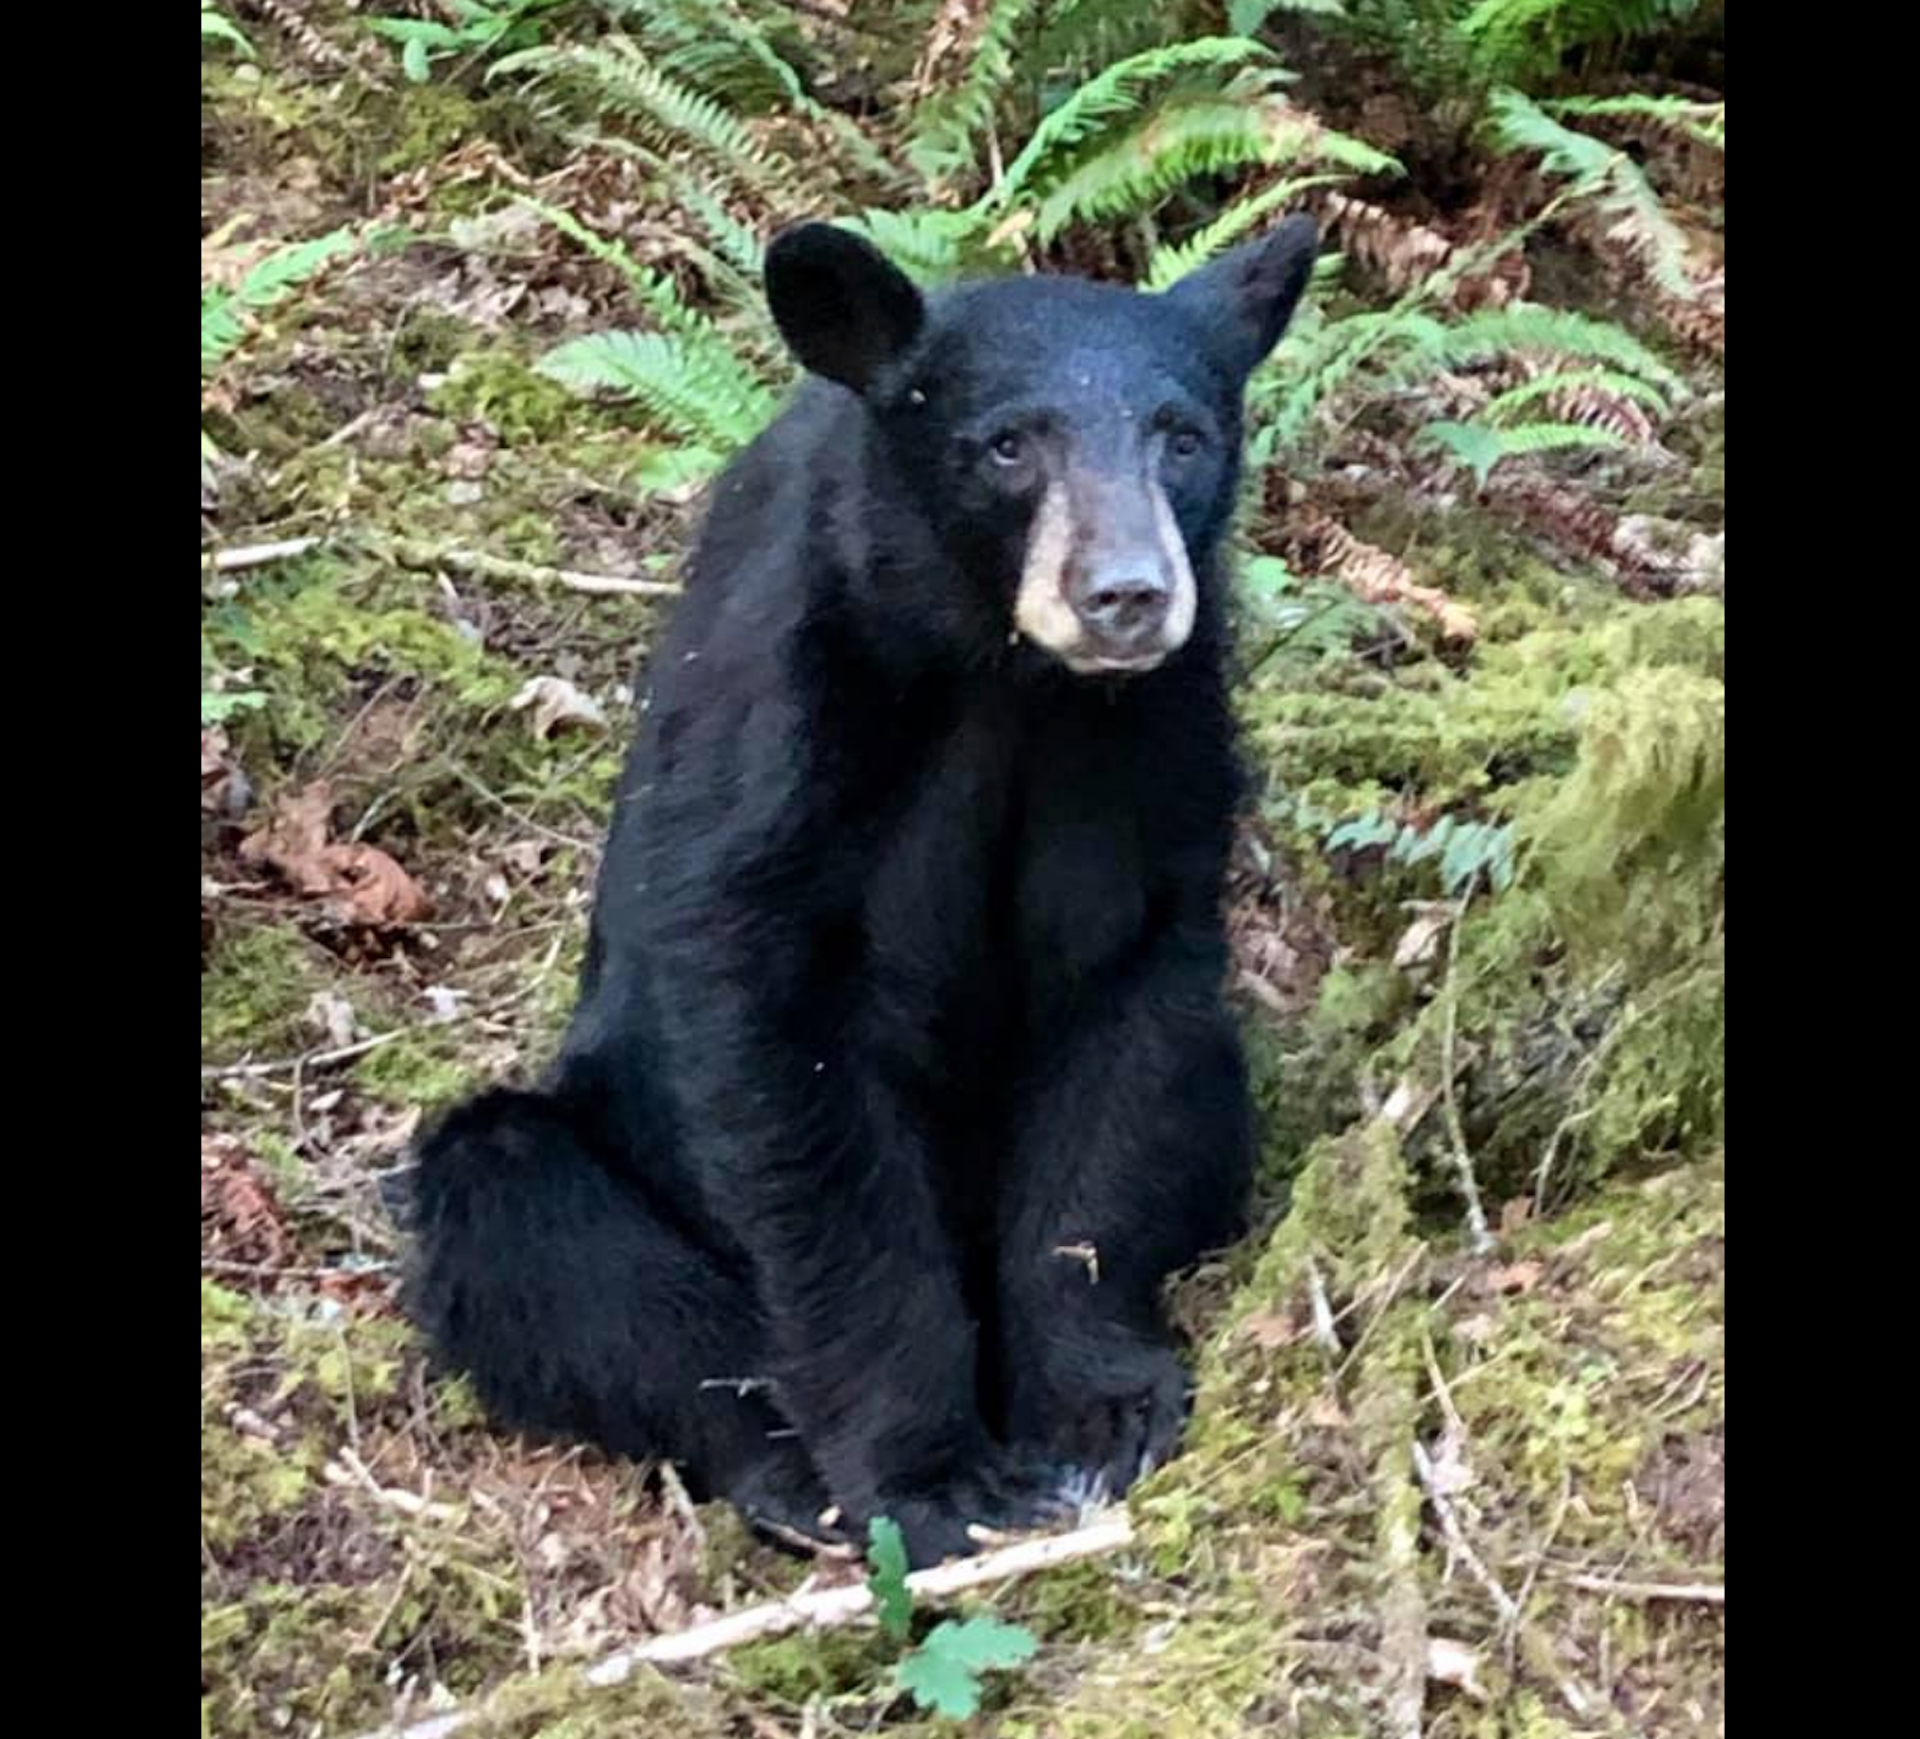 People ignored the rules to snag selfies with a young bear. Wildlife officials had to euthanize him.